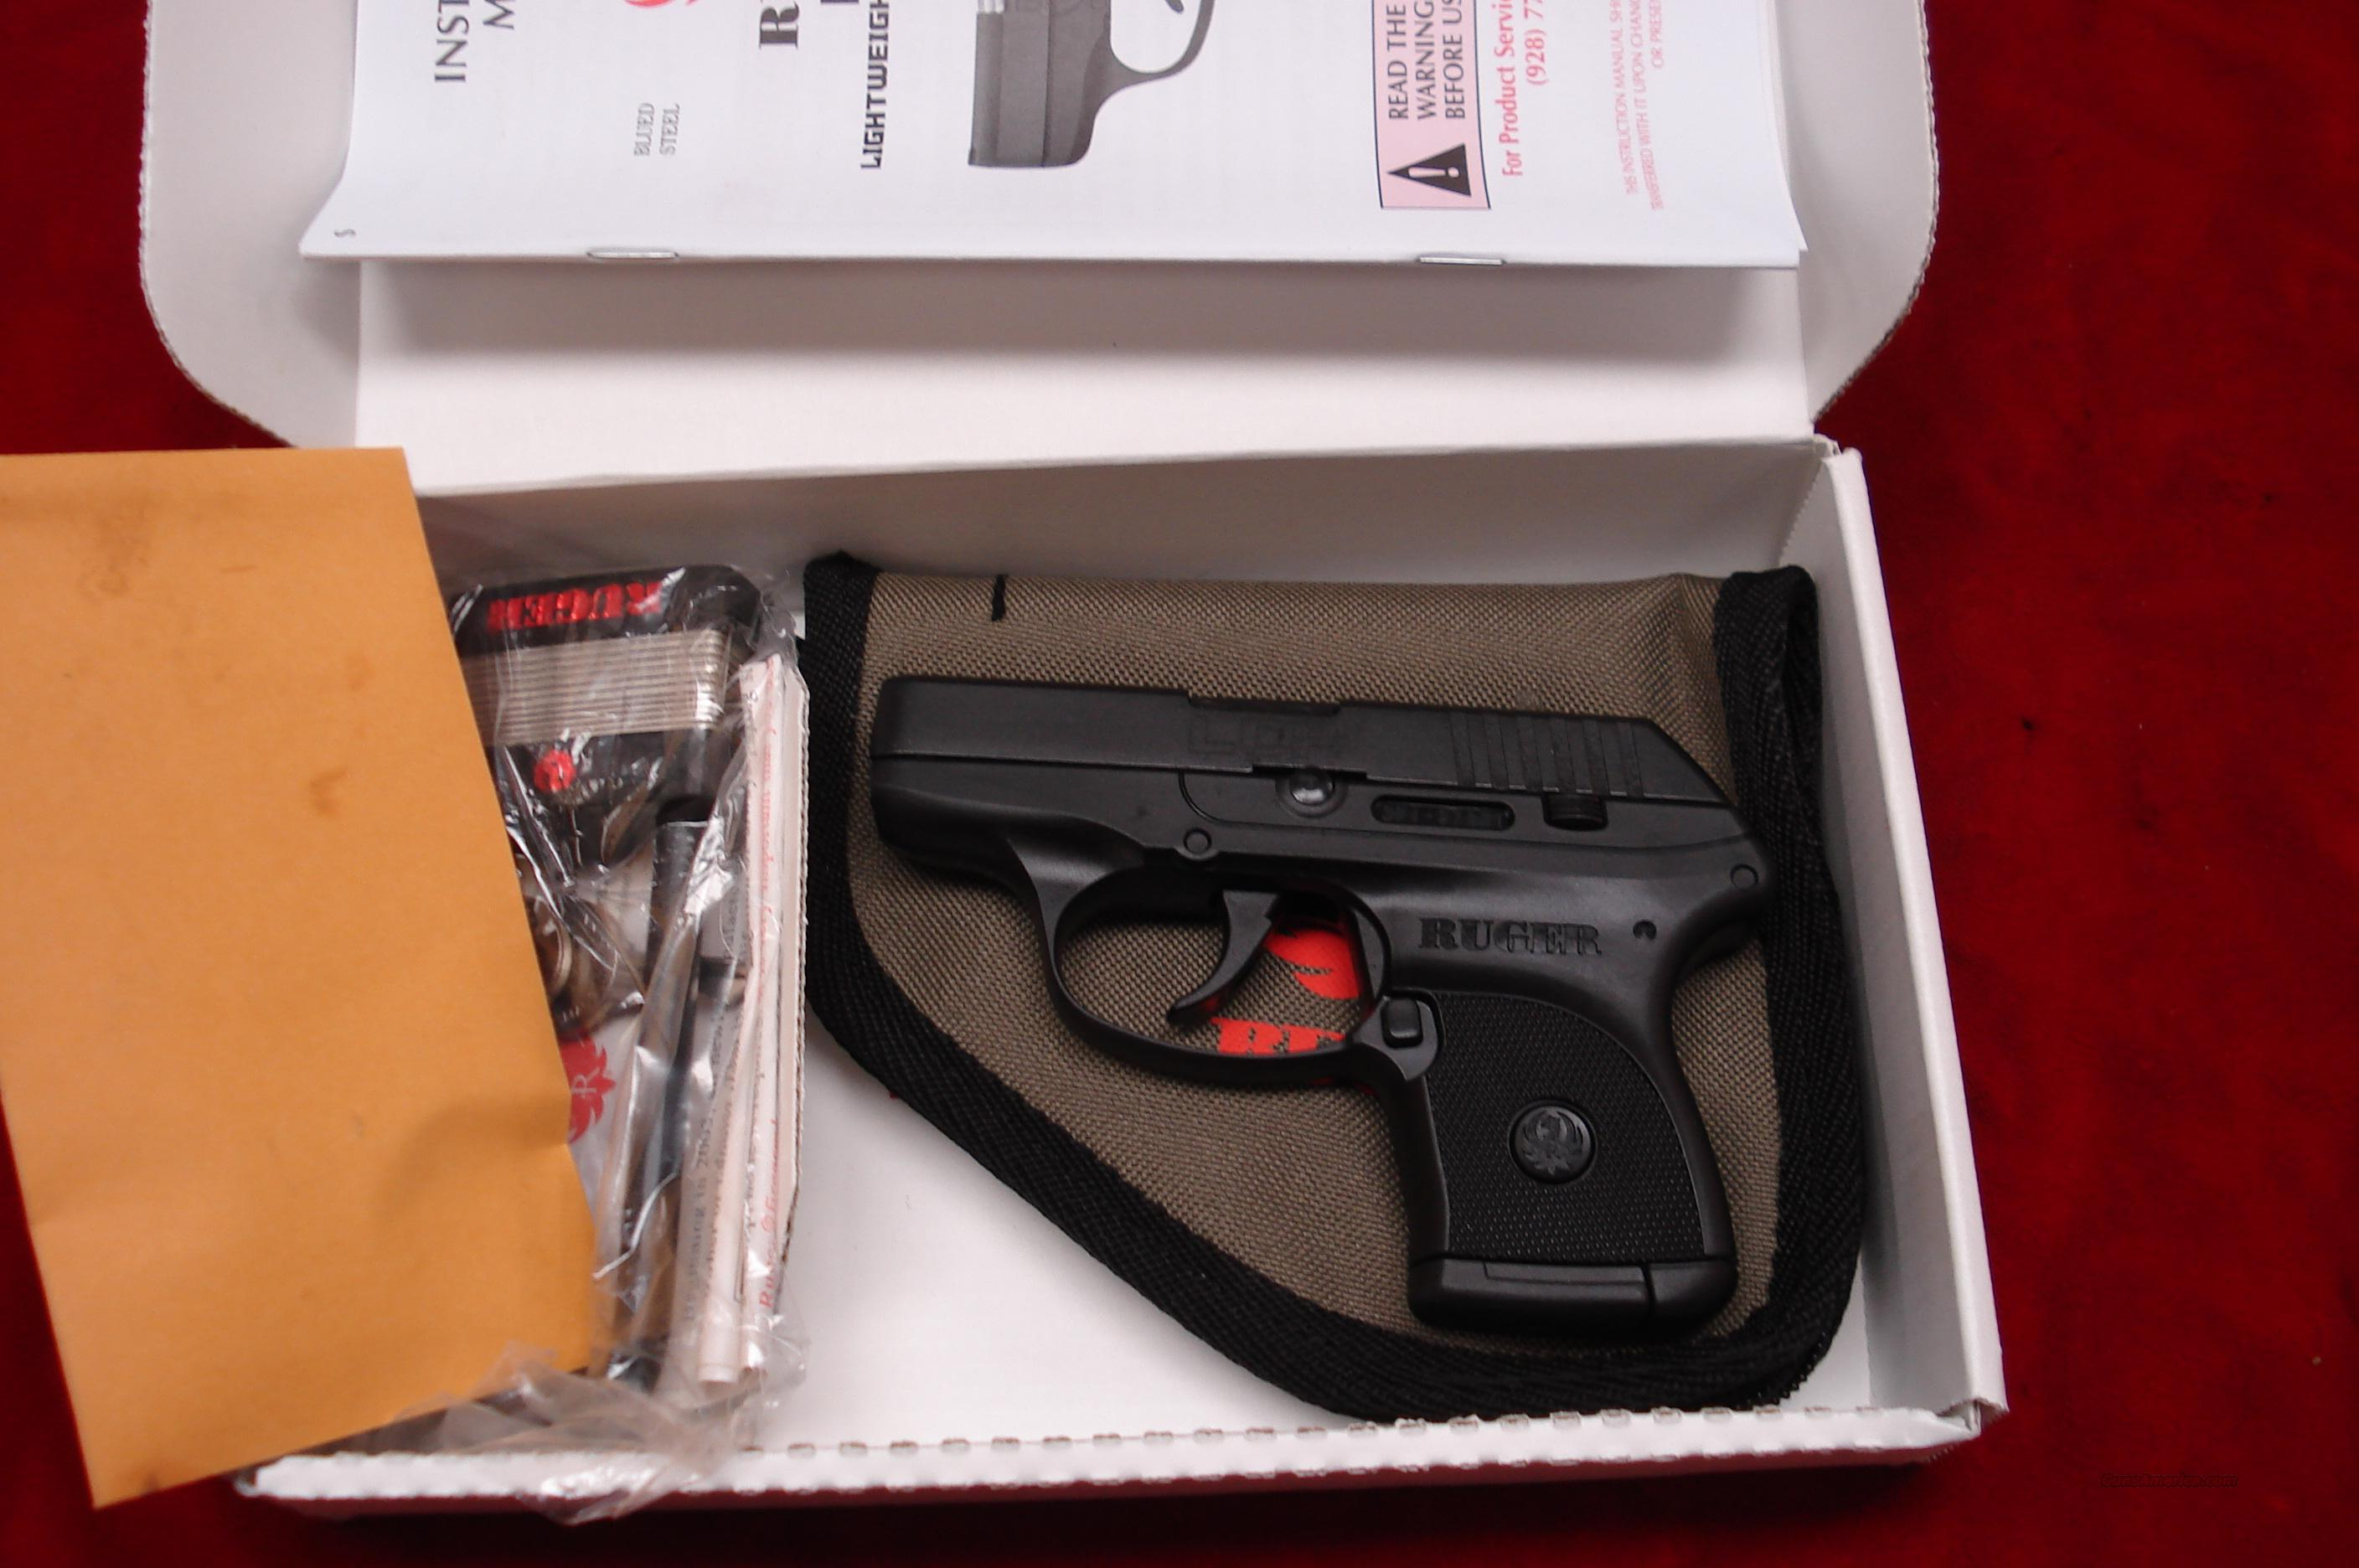 RUGER LCP **NEW RELEASE** (Lightweight Compact Pistol) 380CAL. NEW  Guns > Pistols > Ruger Semi-Auto Pistols > LCP